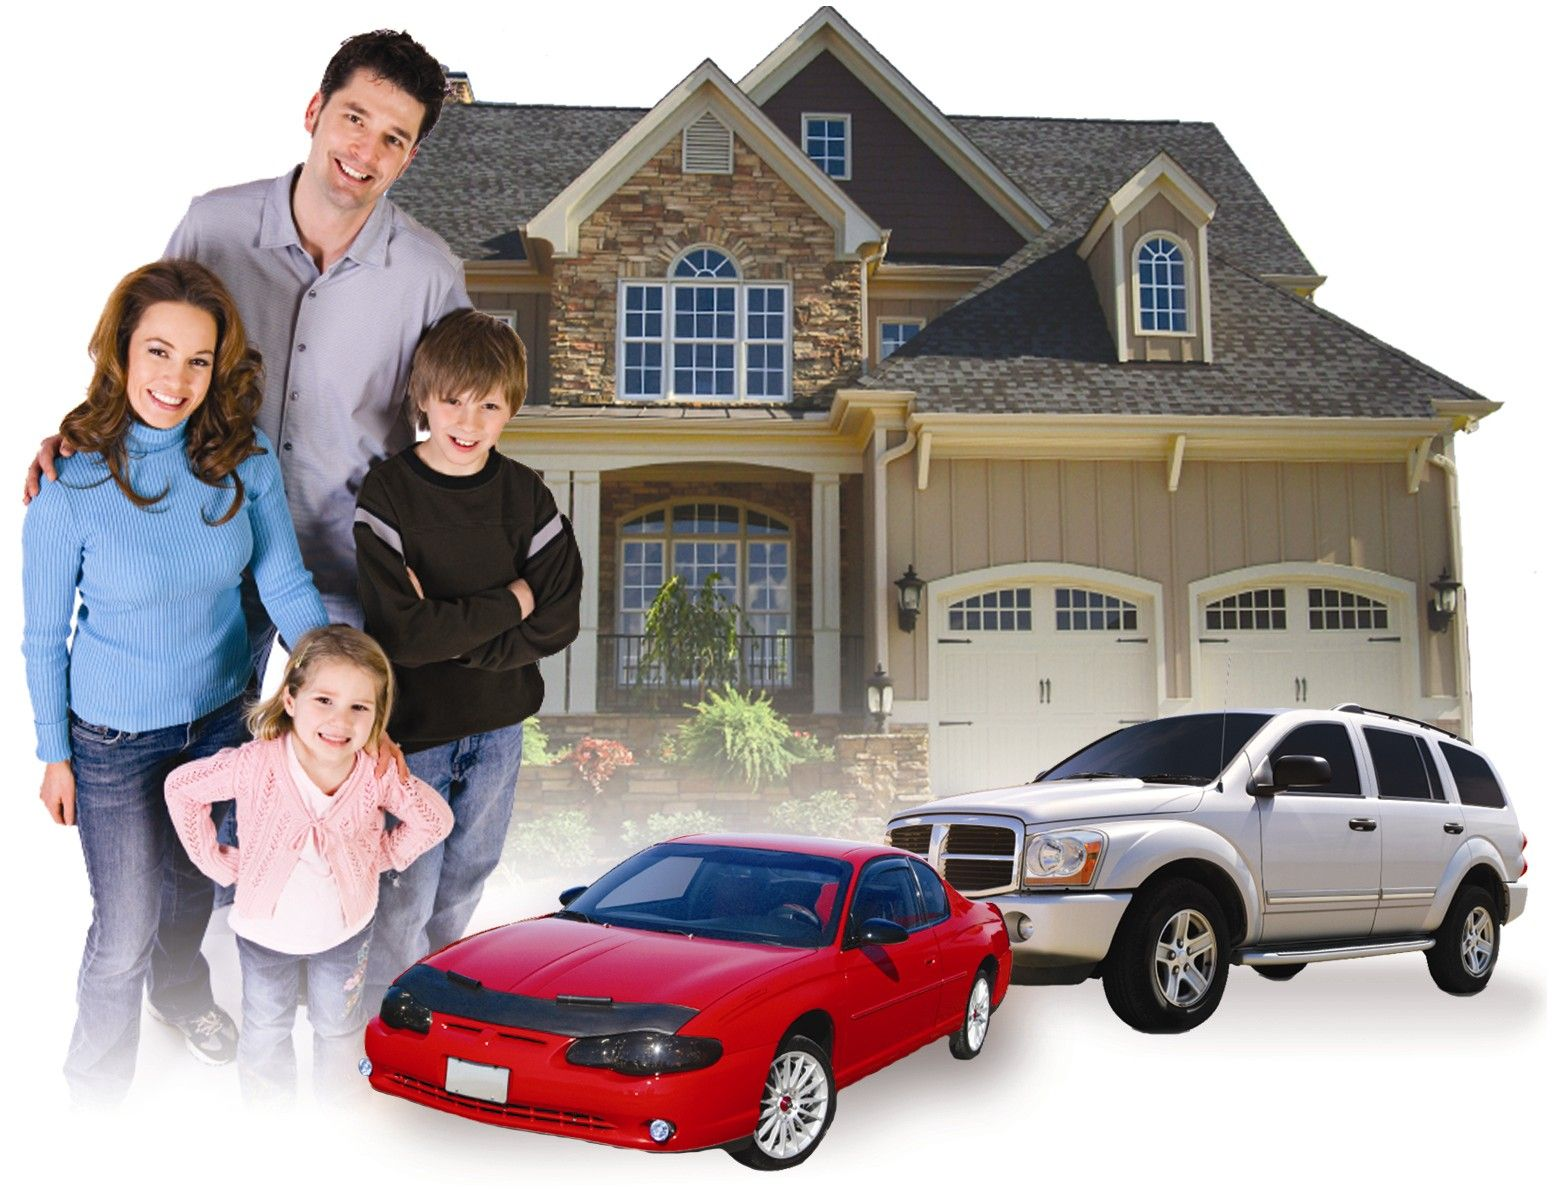 Http Www Insurancepricedright Com Home And Auto Insurance